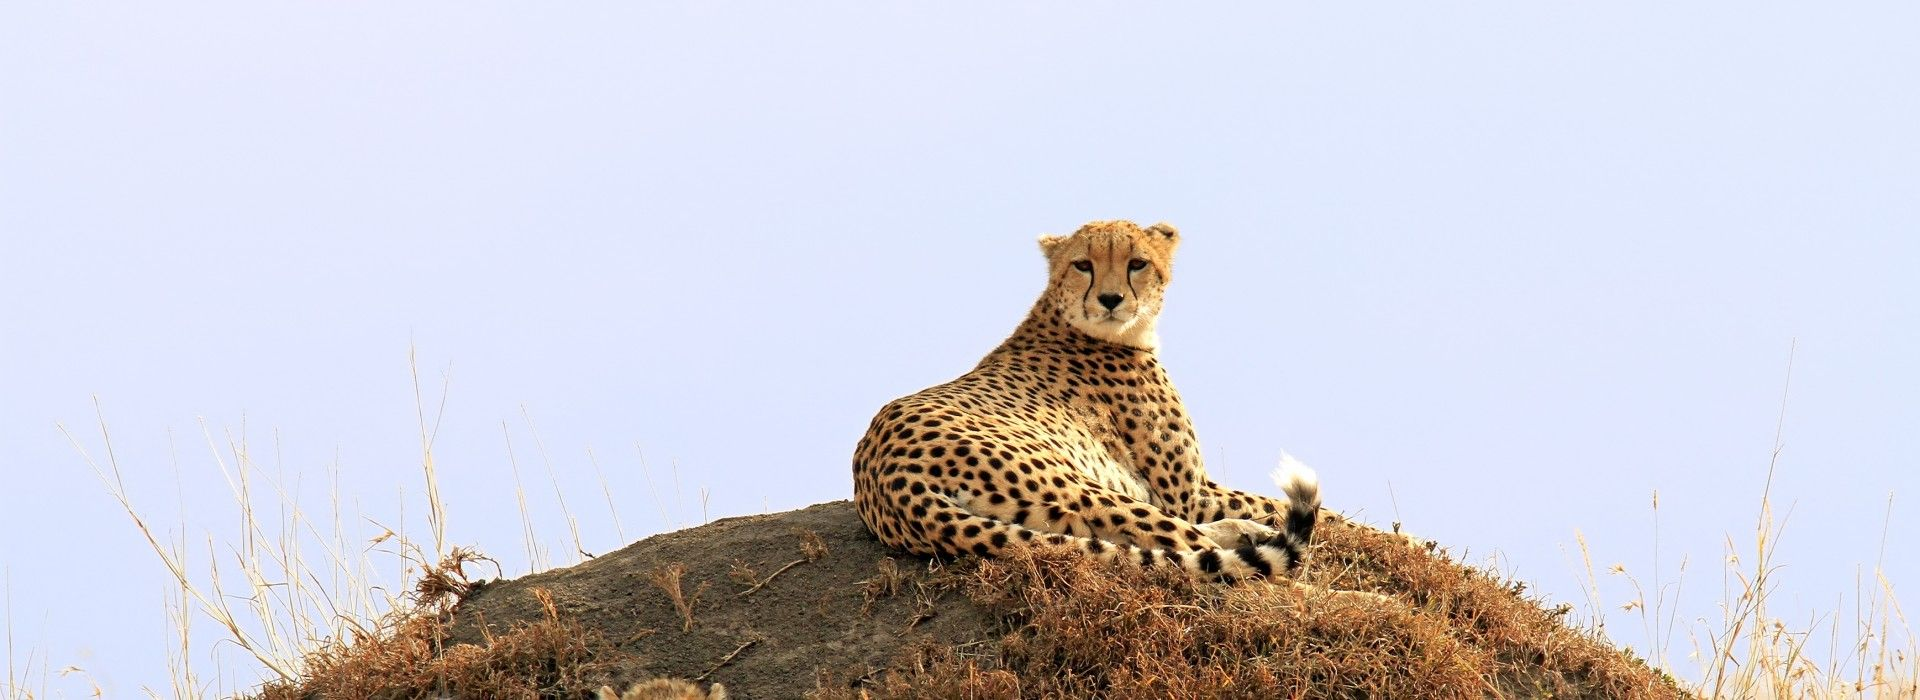 Wildlife, landscapes and nature Tours in Maasai Mara National Reserve